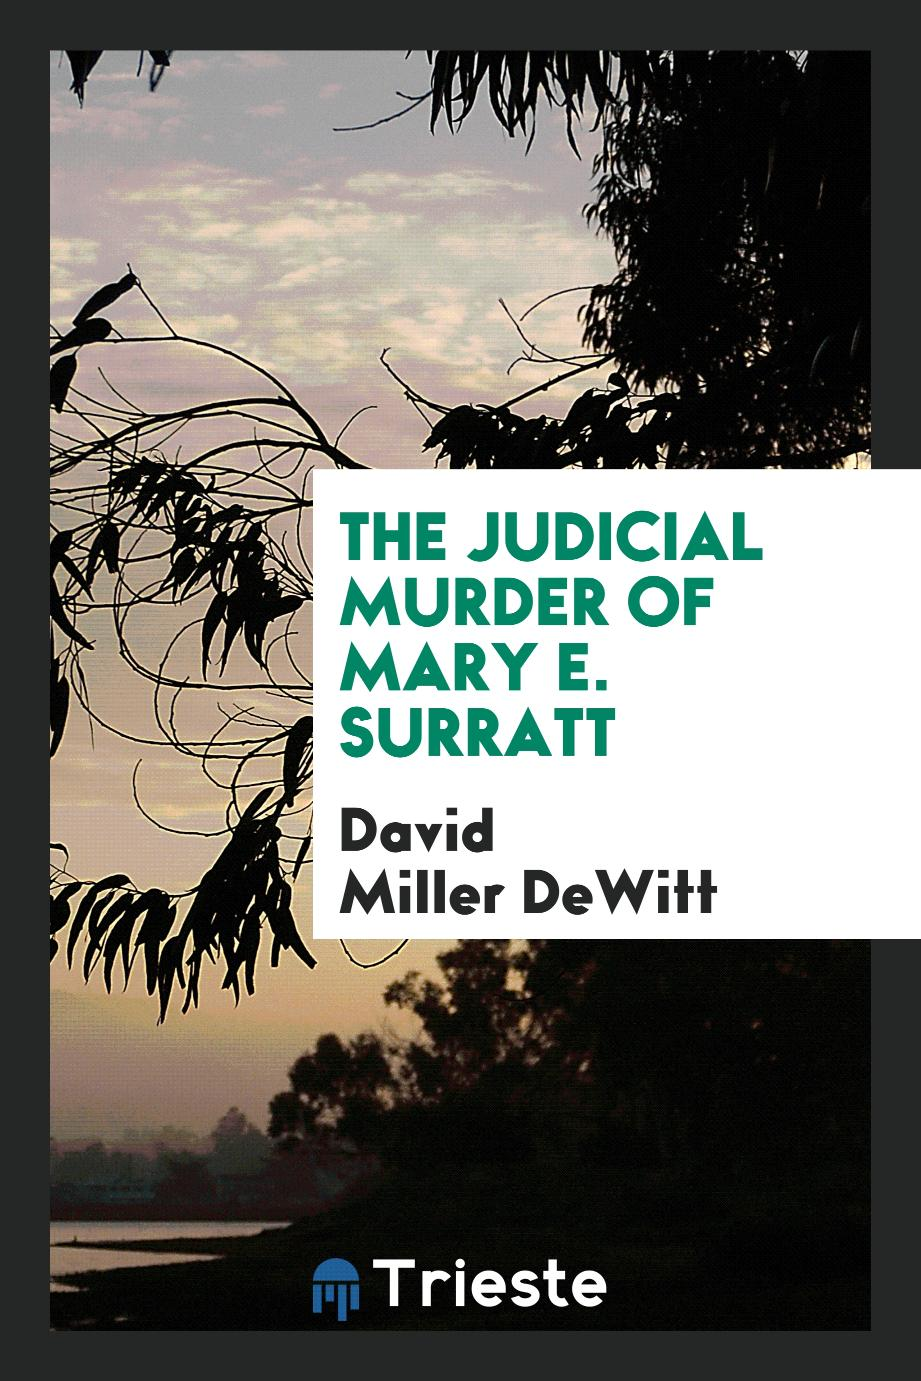 The judicial murder of Mary E. Surratt